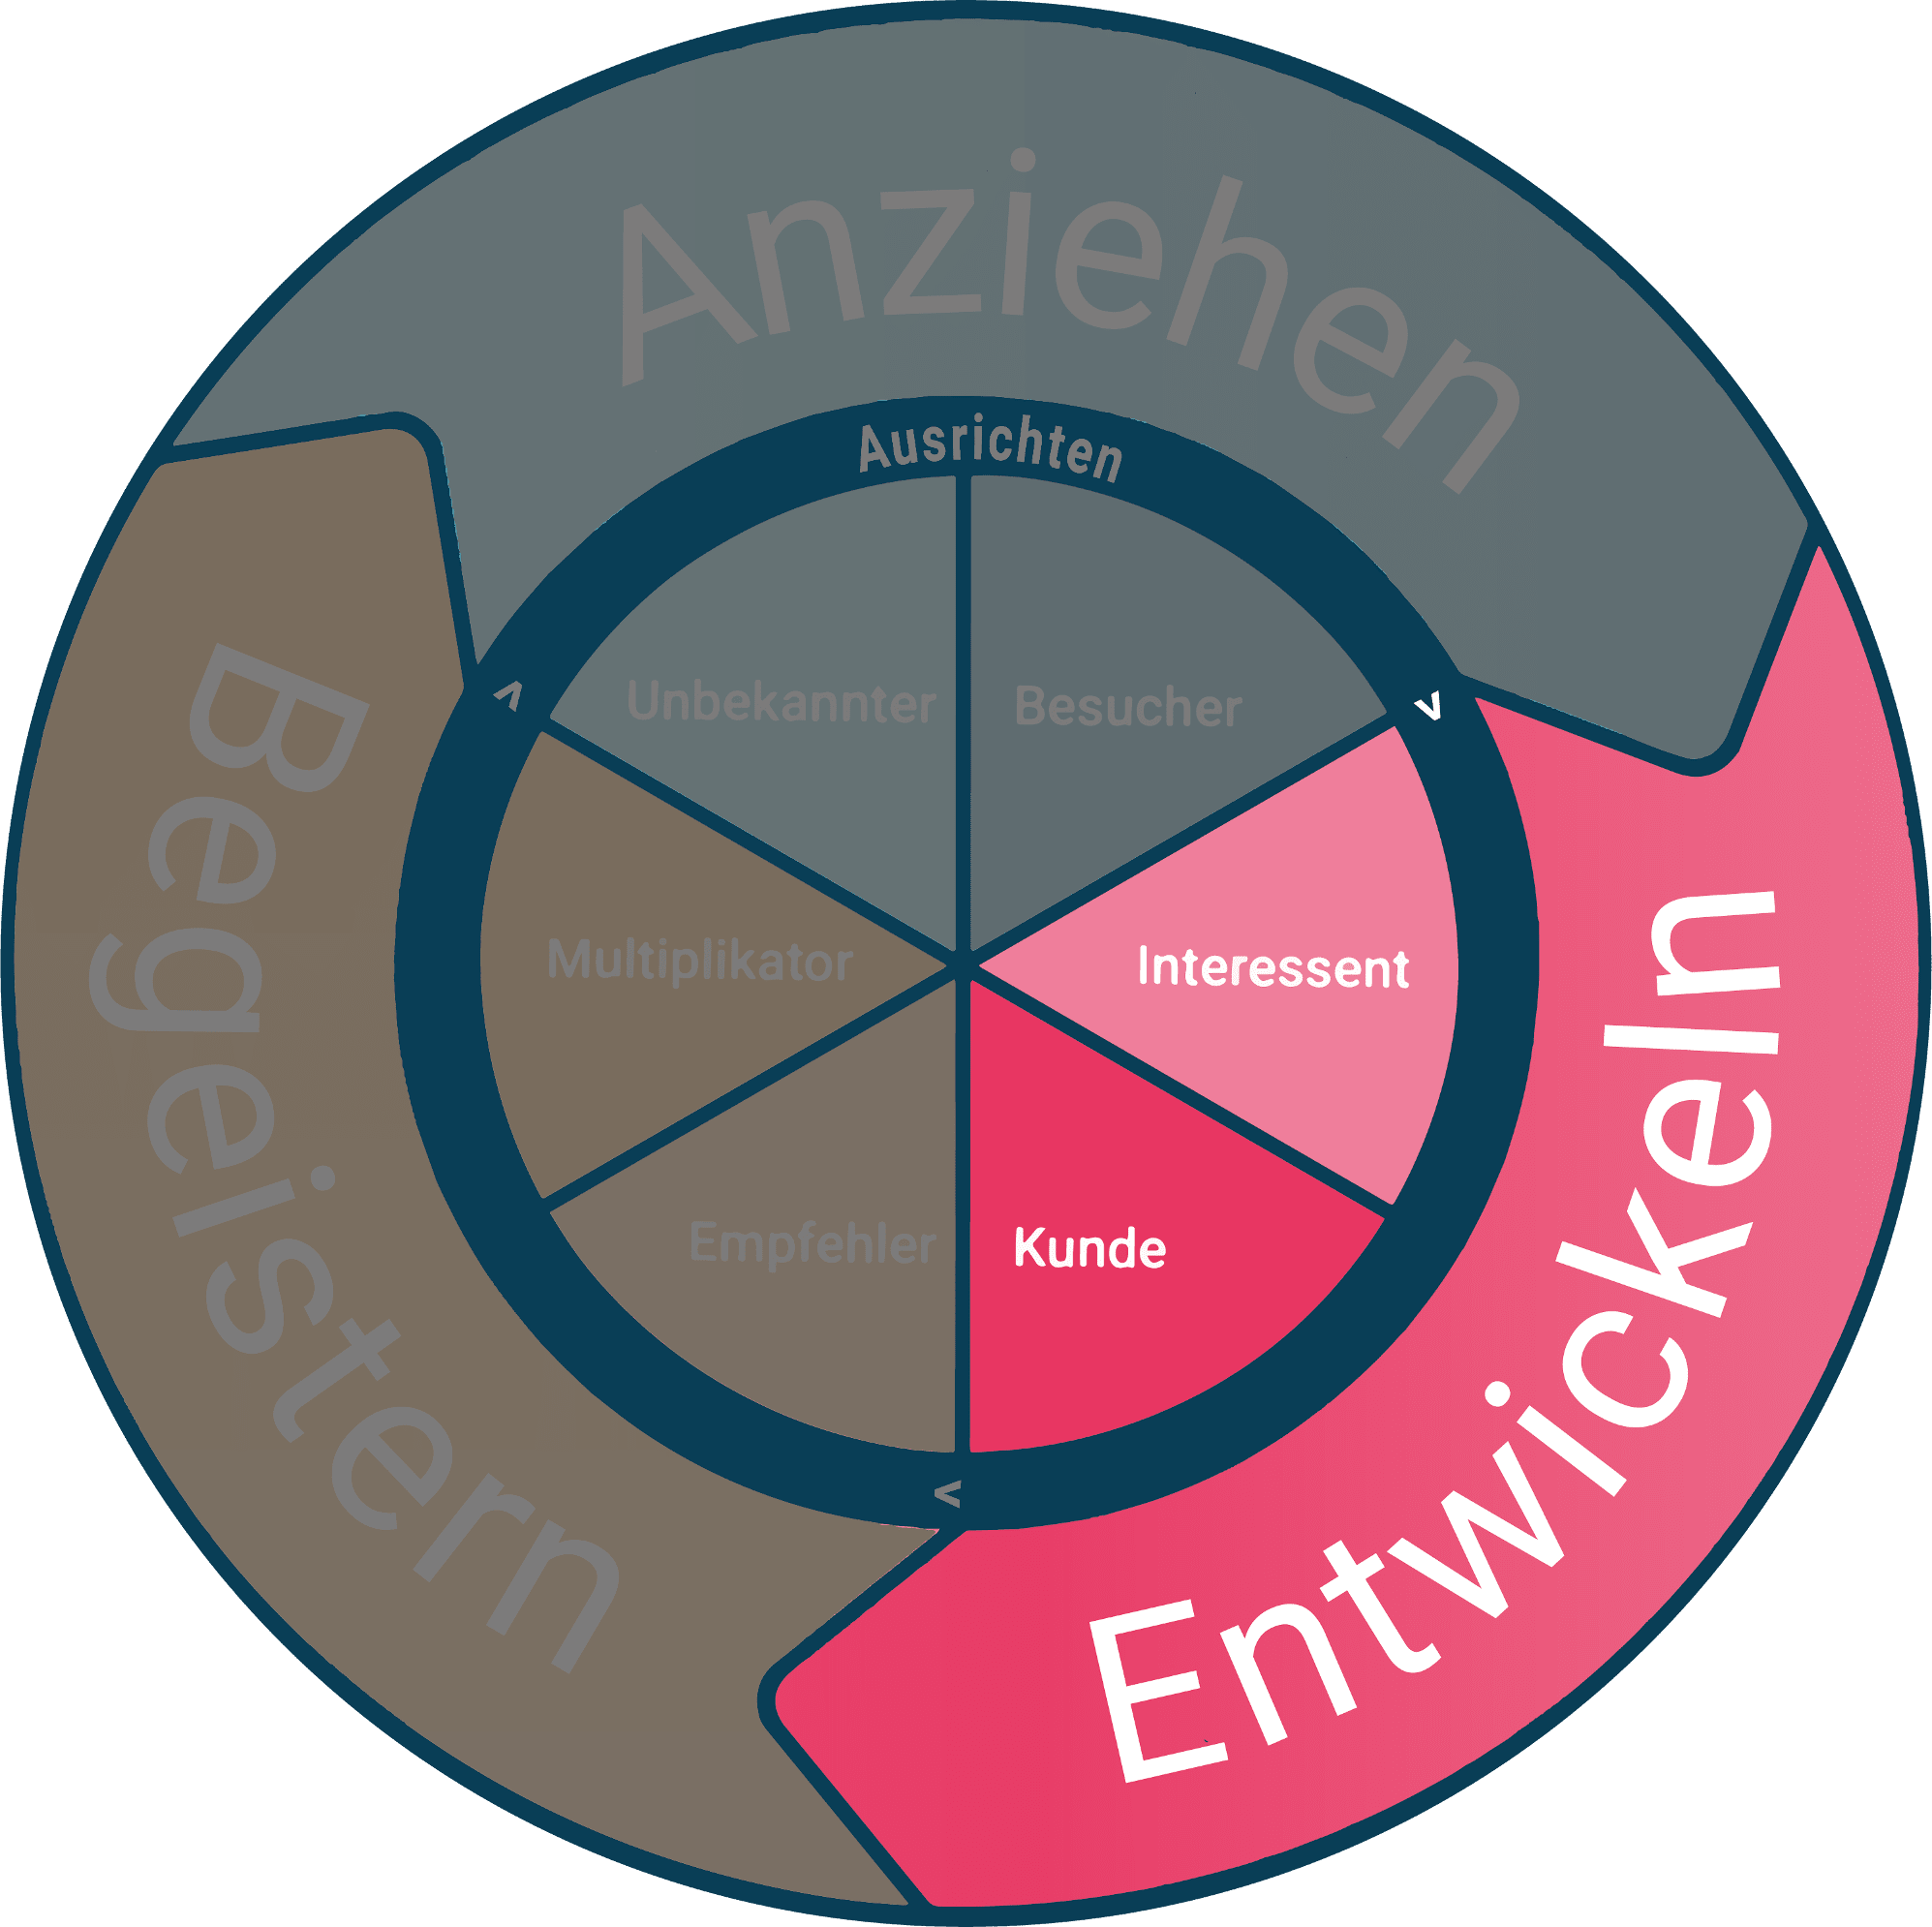 Inbound Marketing Phase 3: Entwickeln